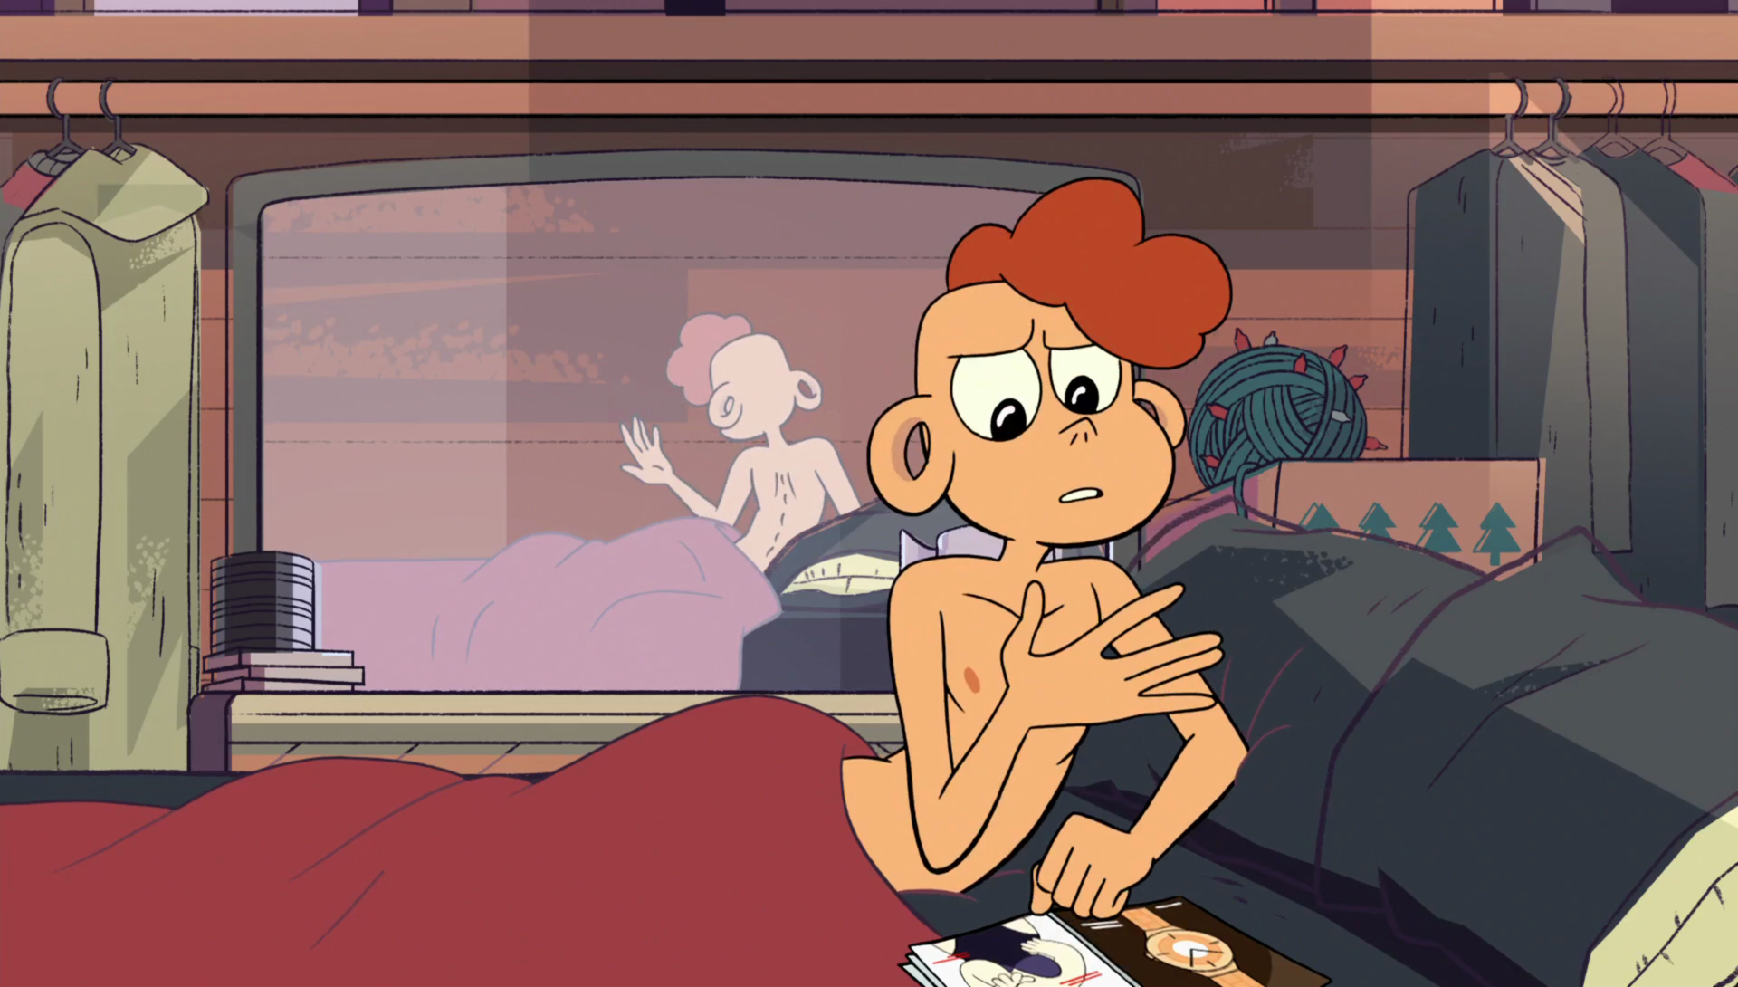 What do you guys think of The New Lars?